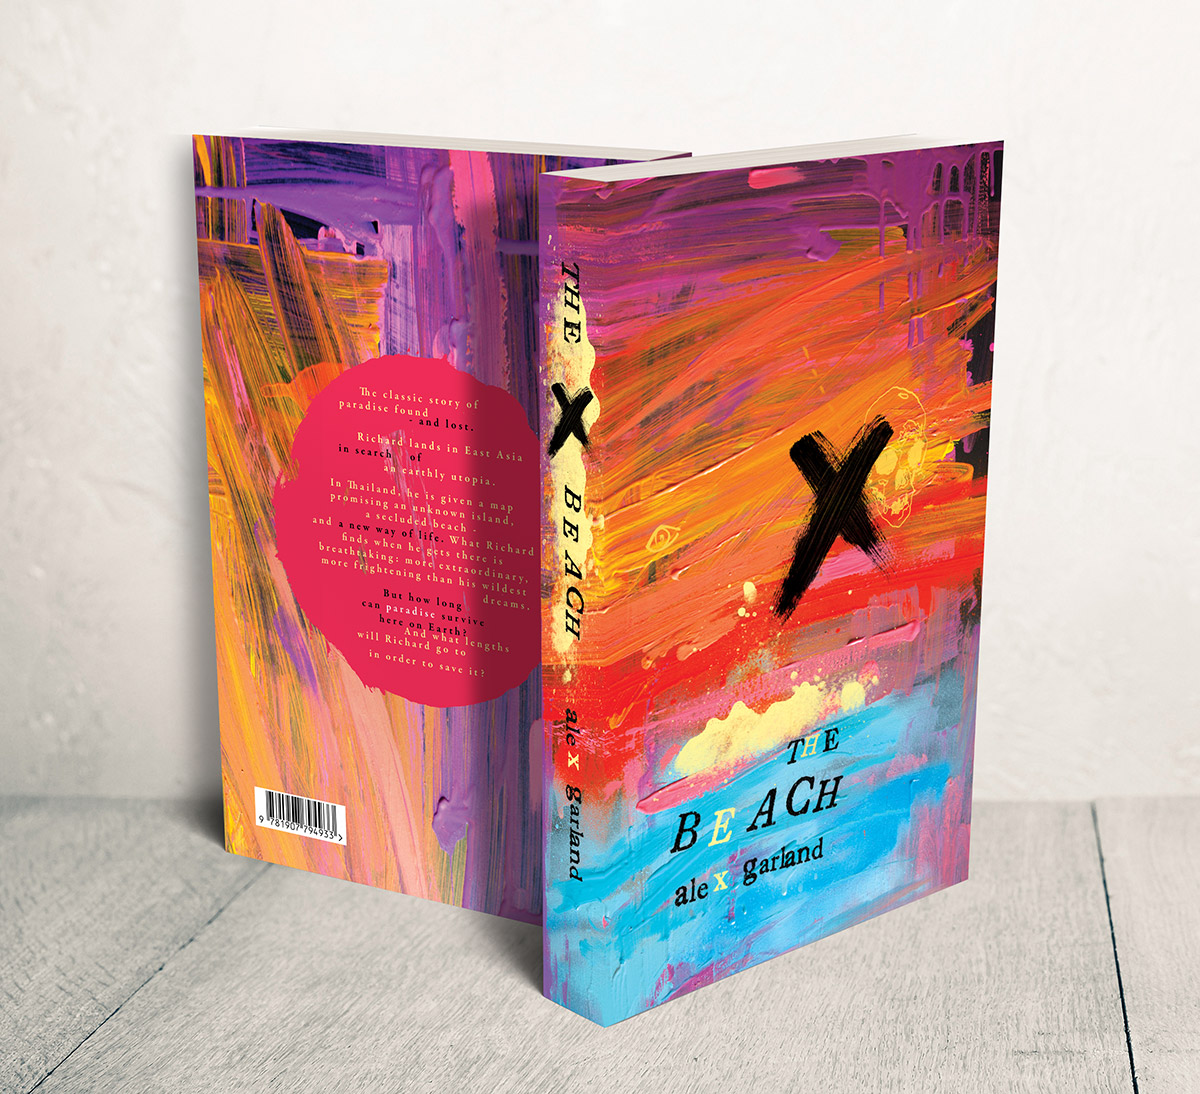 Alex Garland The Beach book cover, book jacket illustration and design by Ben Tallon illustrator, hand lettering, art direction, manchester artist